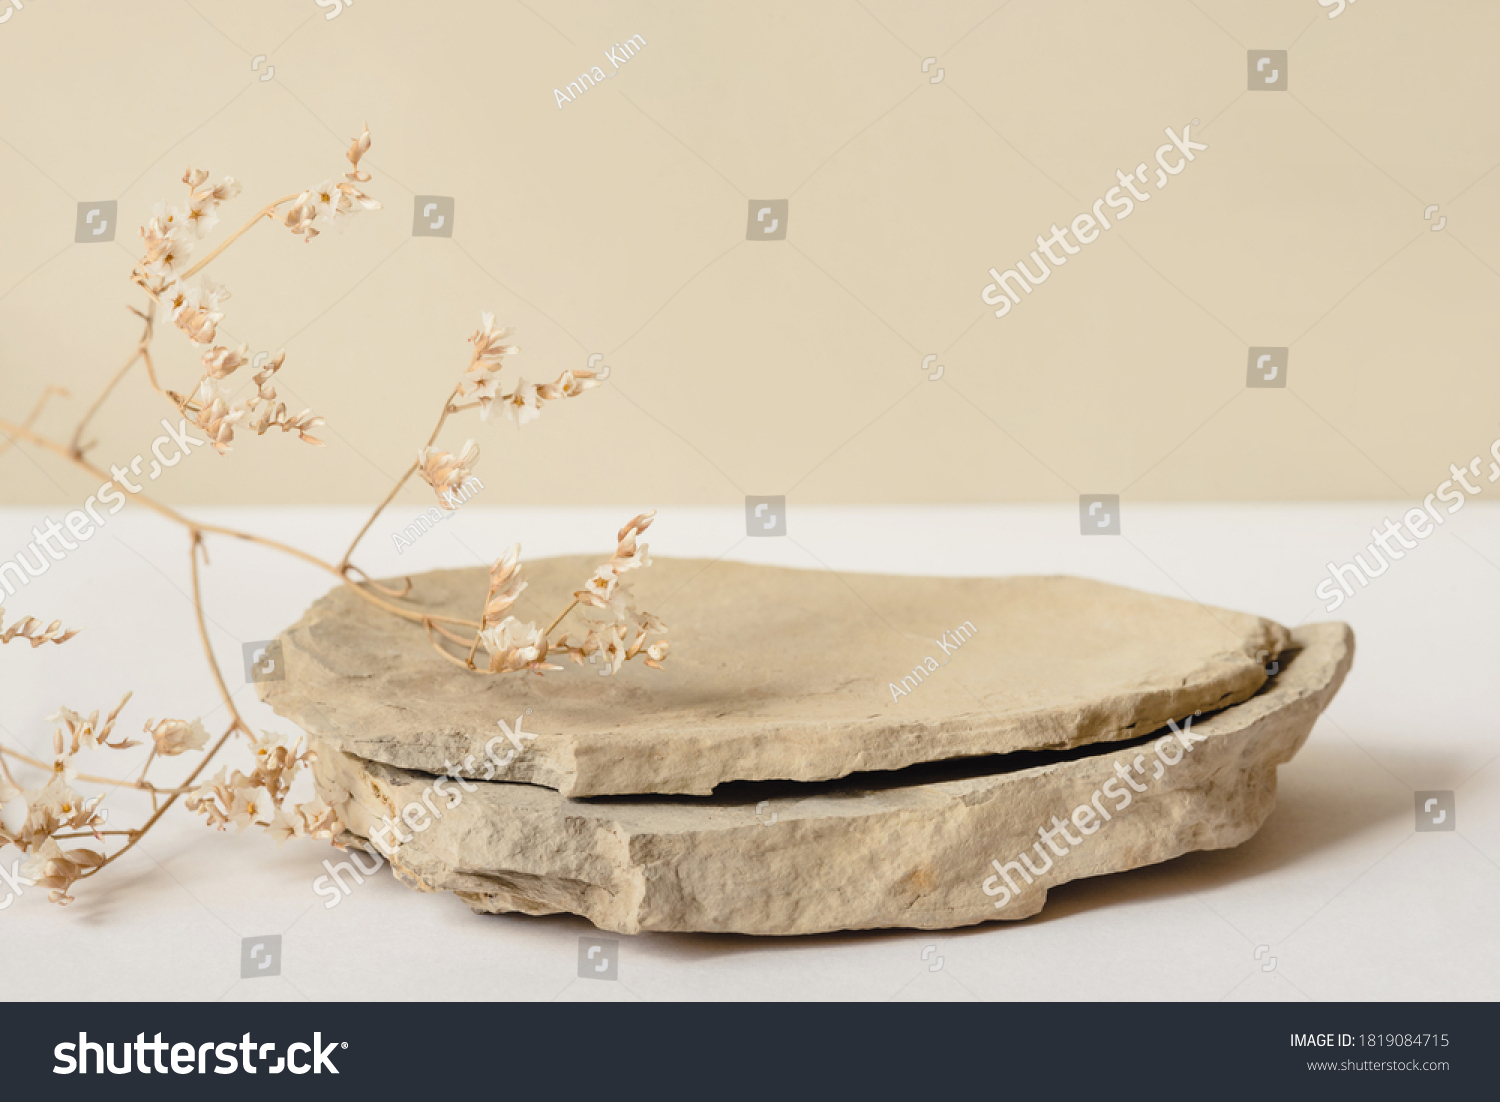 Background for cosmetic products of natural beige color. Stone podium and dry flower on a white background. Front view. #1819084715